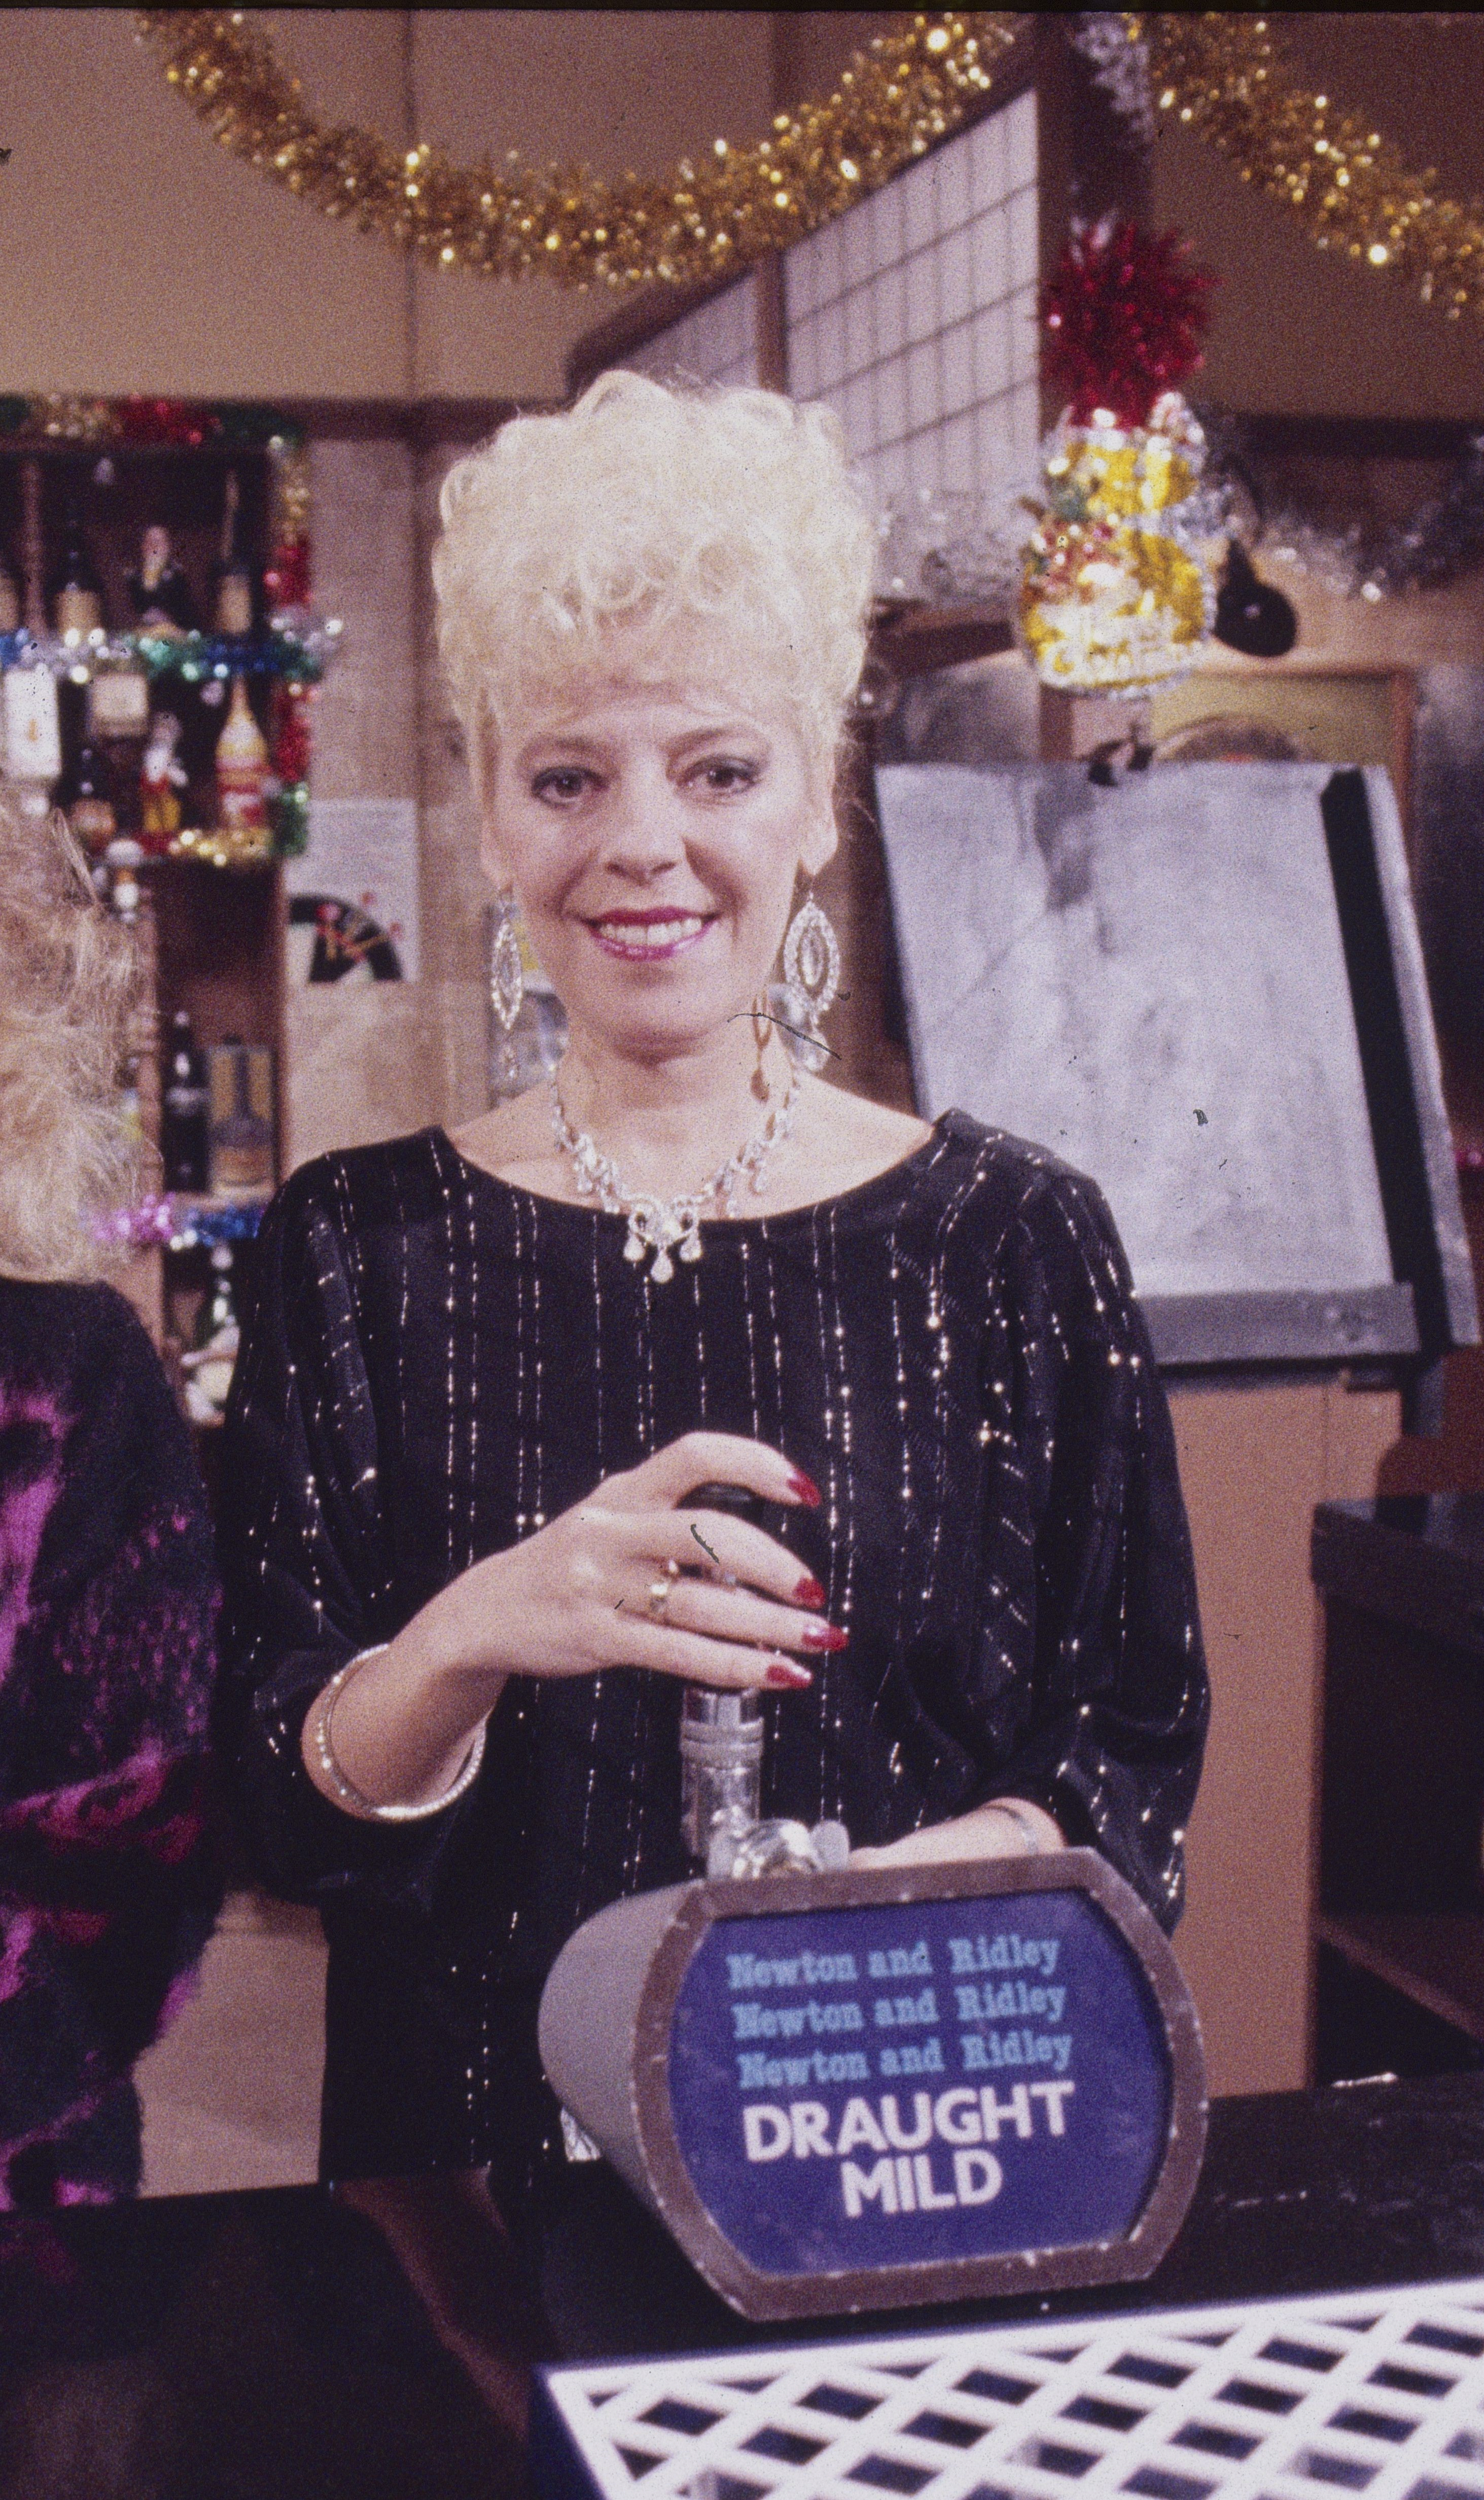 Editorial use only Mandatory Credit: Photo by ITV/REX/Shutterstock (7870109d) Sue Jenkins (as Gloria Todd) and Julie Goodyear (as Bet Lynch) 'Coronation Street' TV series - 1985 Coronation Street is a long running Television soap opera set in the fictional North of England town of Weatherfield. Created by Tony Warren. First broadcast on December 9th, 1960. Produced by ITV Granada.